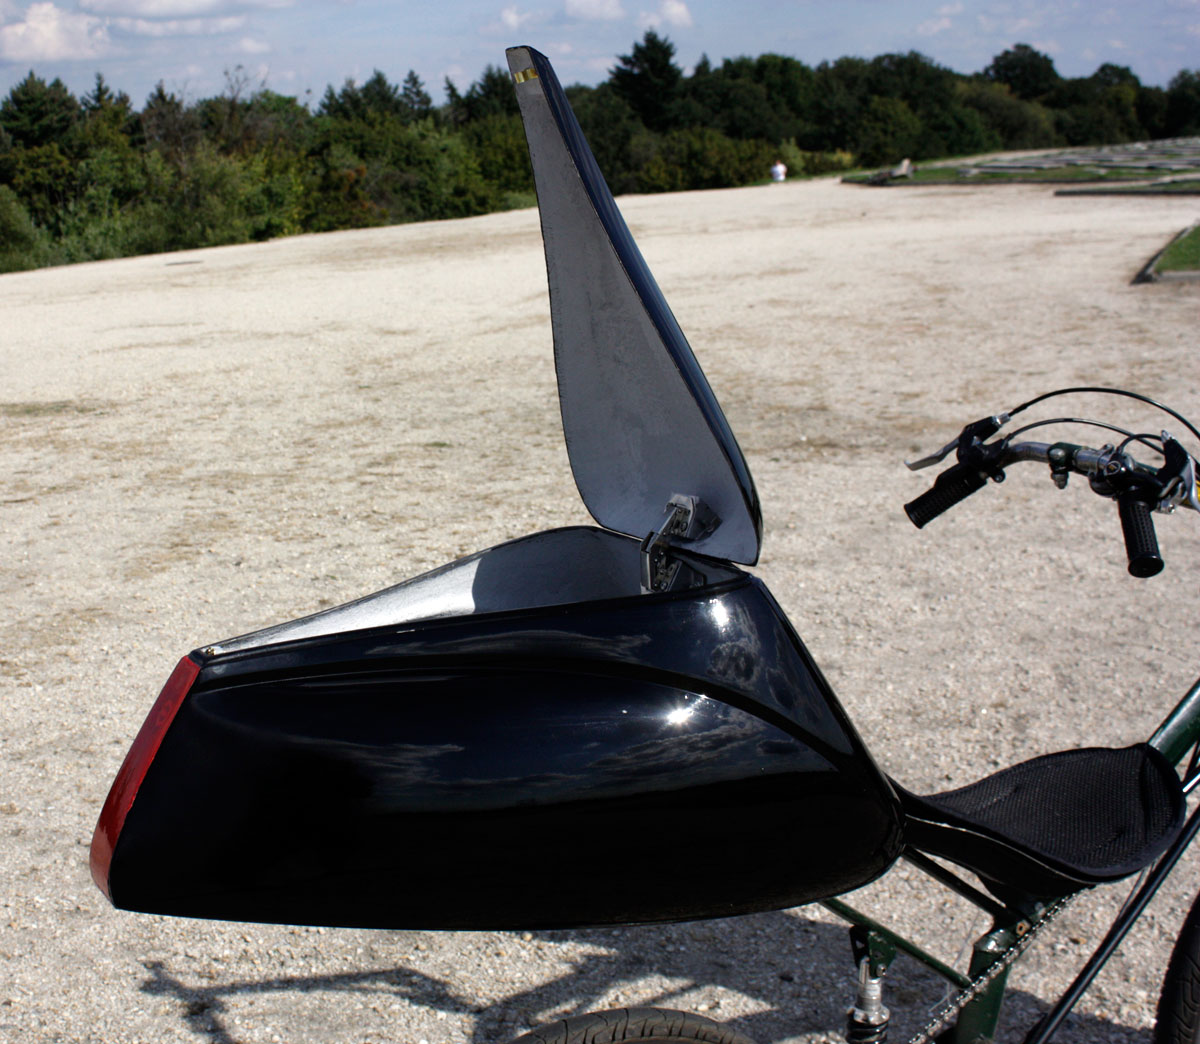 Talbox Dolphin, color: black. For recumbent bike. Increases aerodynamic speed of recumbent bike.